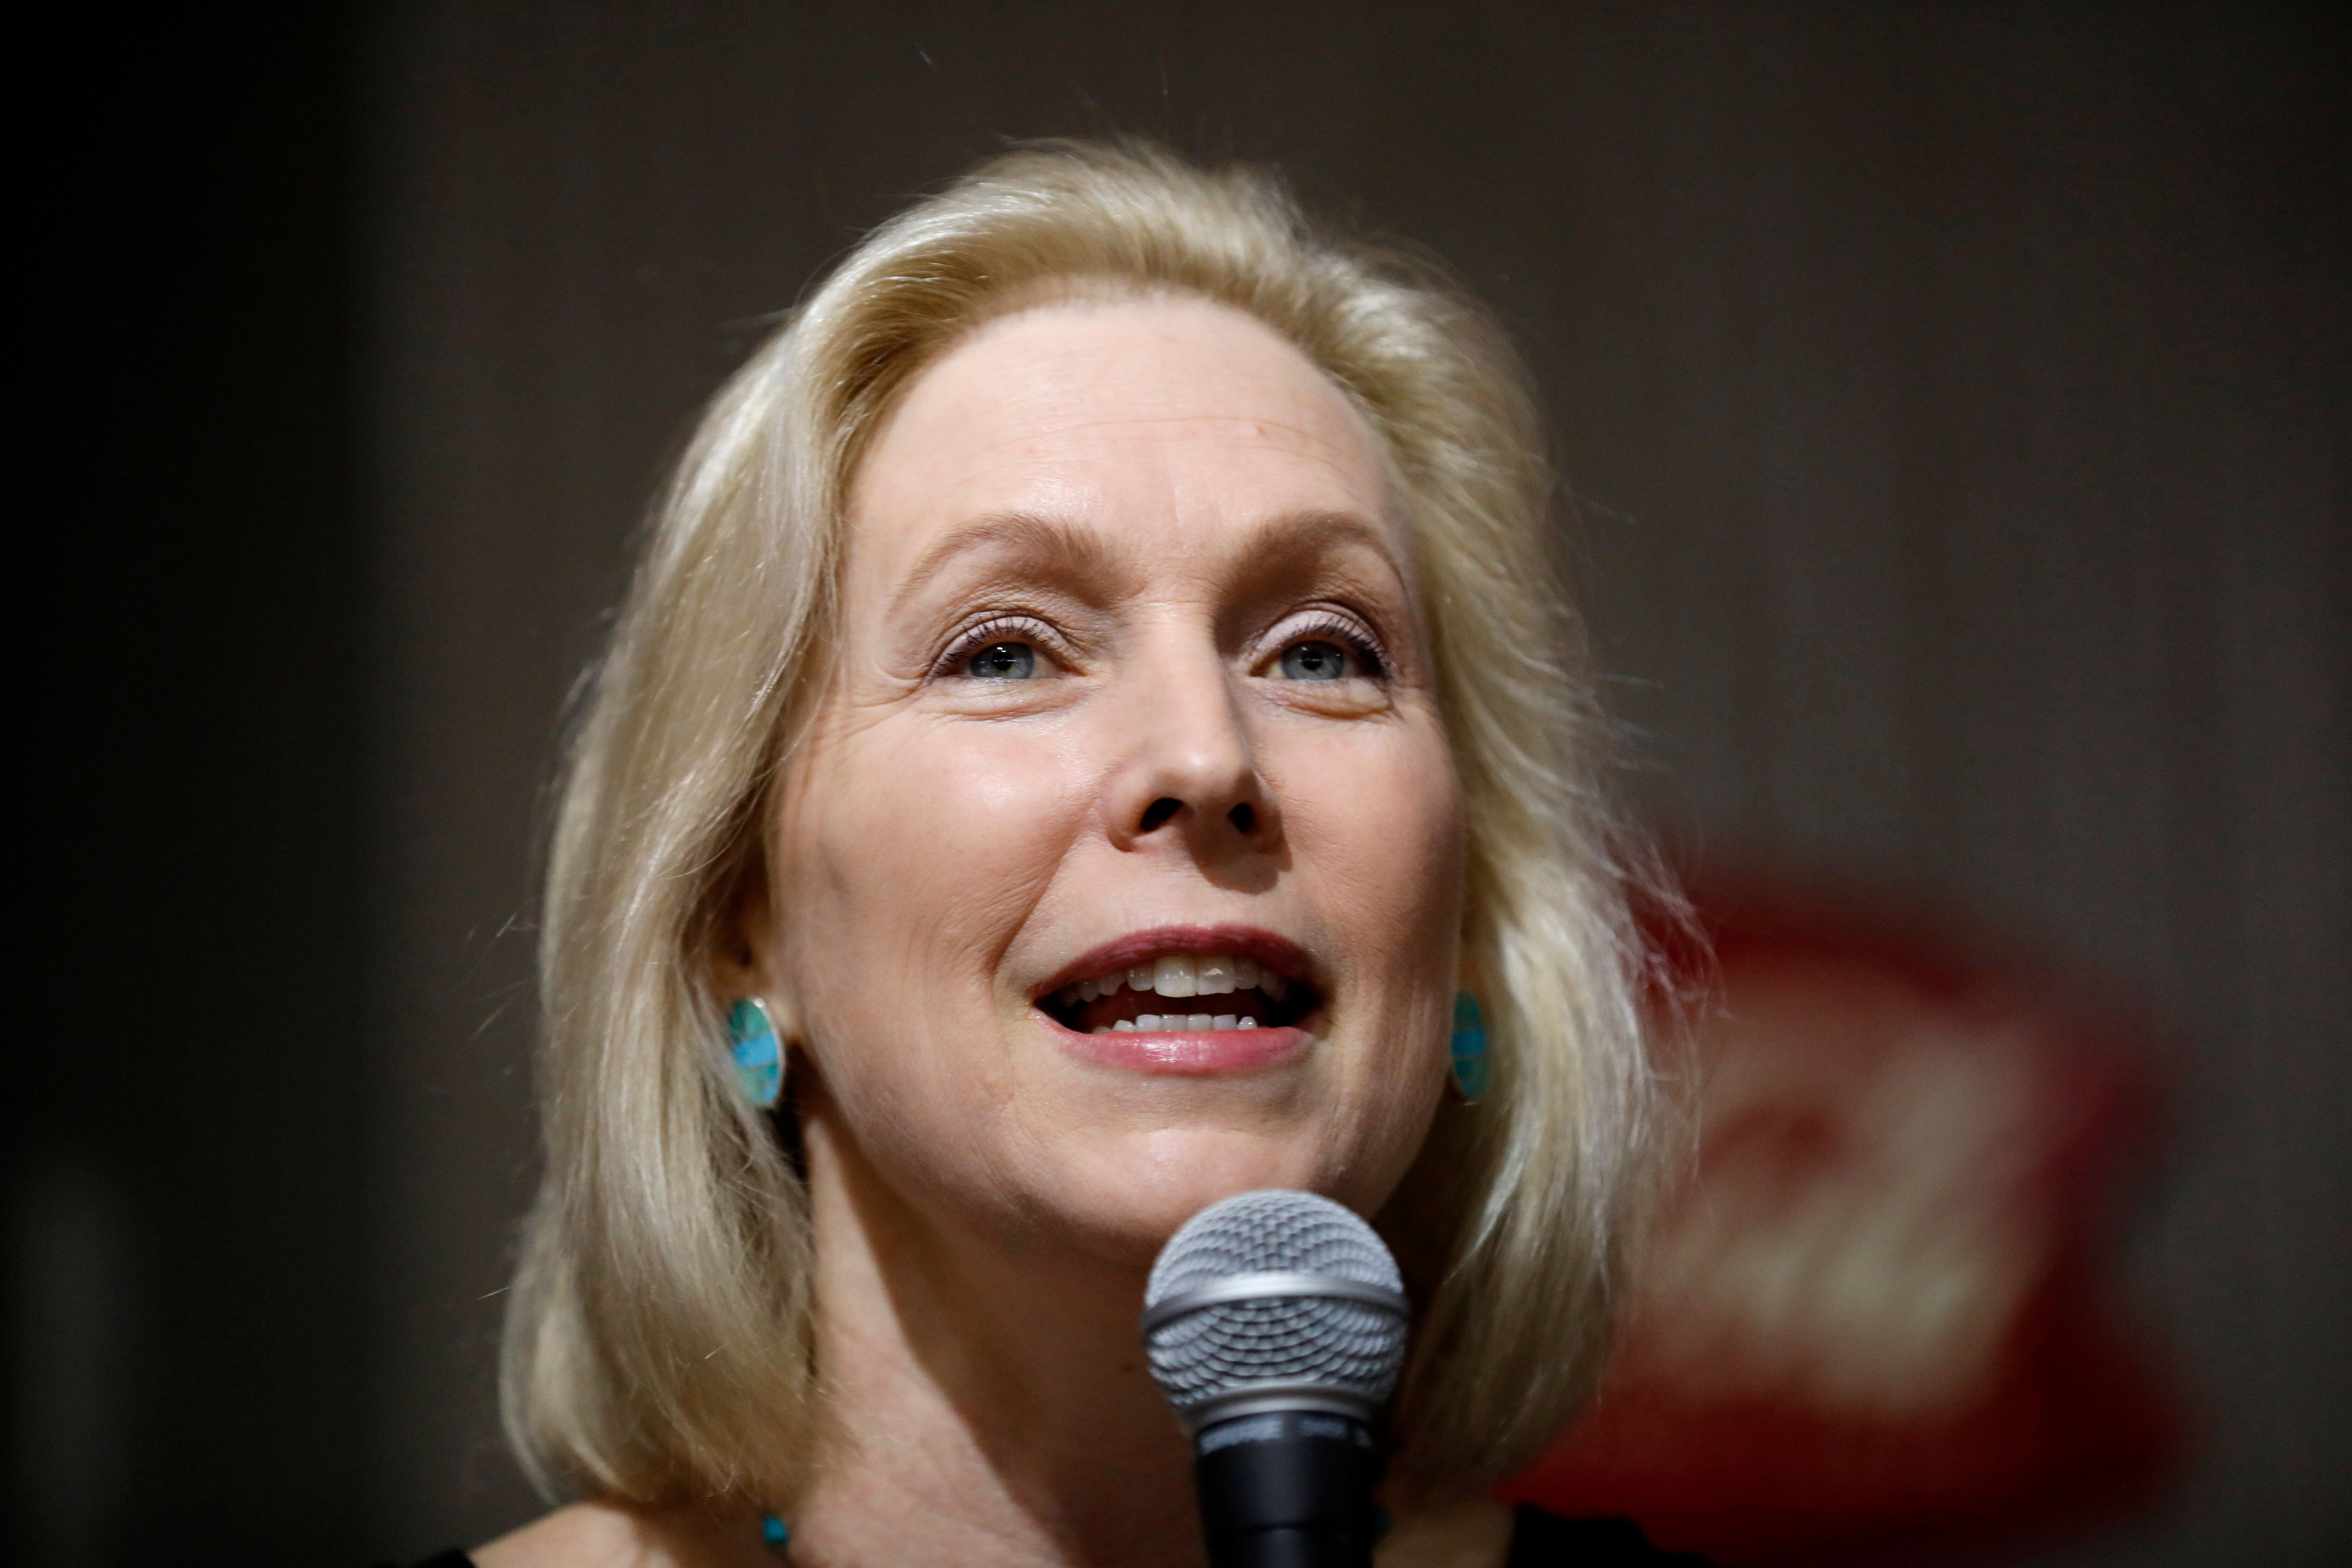 2020 Democratic presidential candidate Sen. Kirsten Gillibrand speaks during a meet and greet with local residents, Thursday, April 18, 2019, in Indianola, Iowa. (AP Photo/Charlie Neibergall)